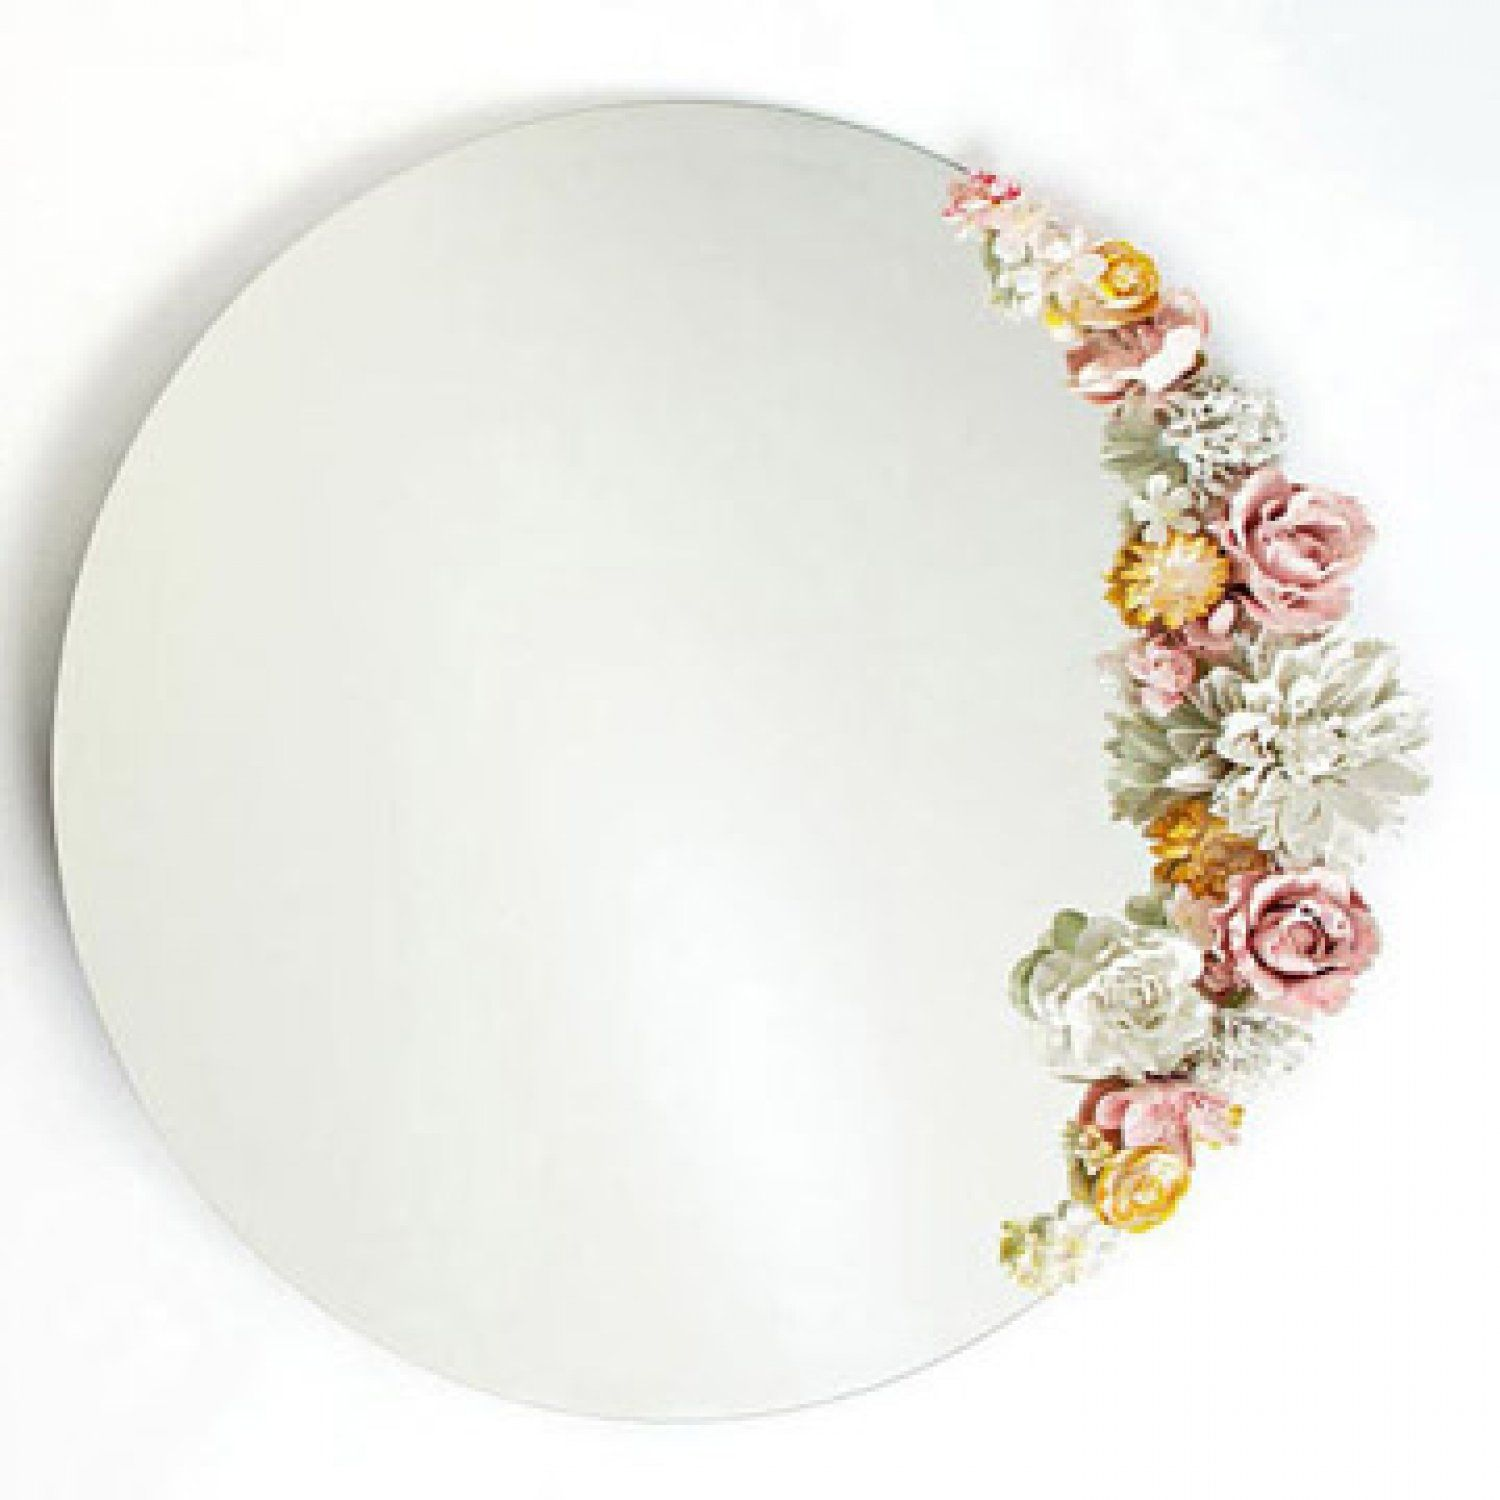 Craft Idea: Mirror With Flowers